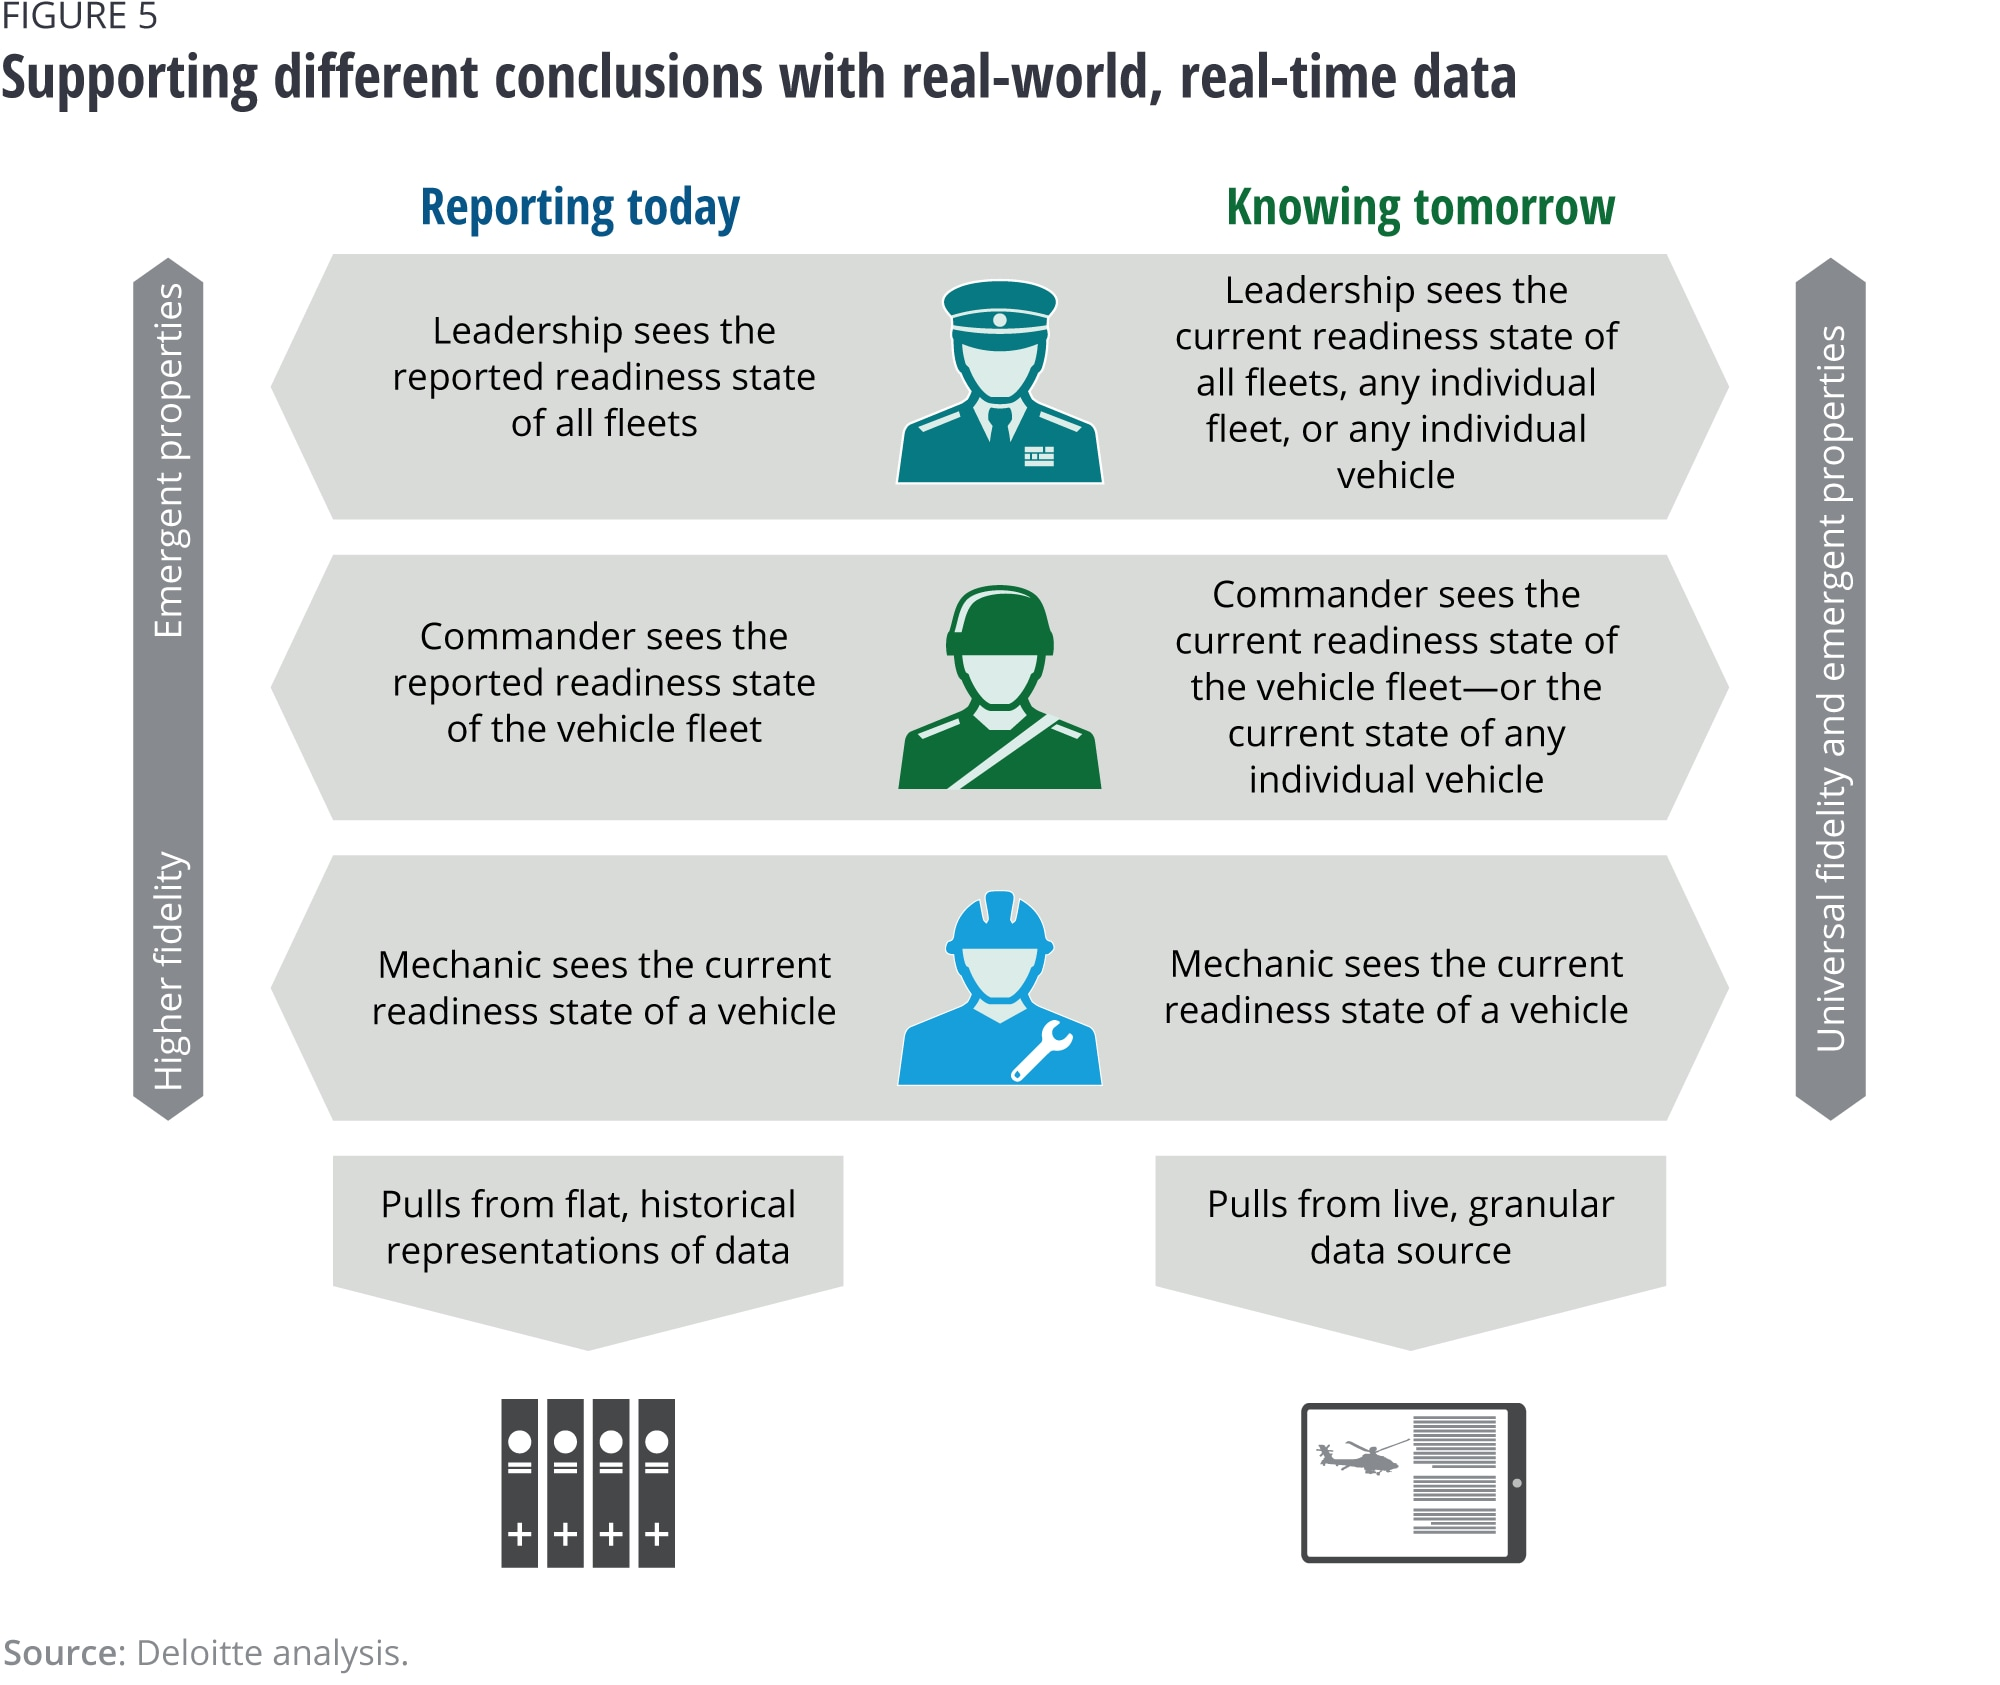 Supporting different conclusions with real-world, real-time data